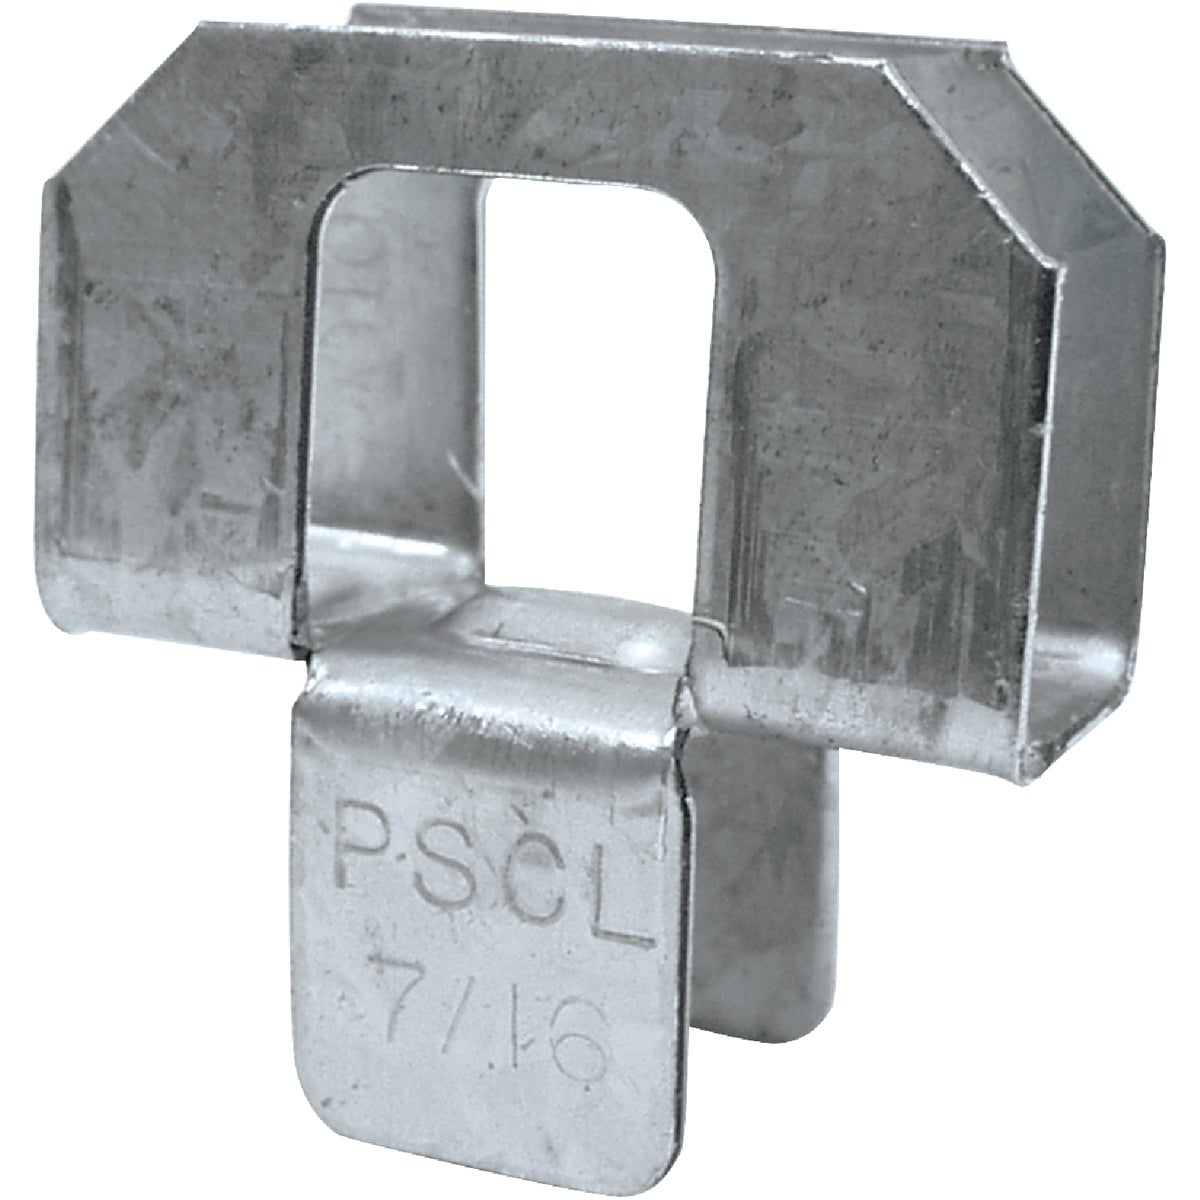 "7/16"" PLYWOOD CLIP - PSCL 7/16 by Simpson Strong Tie"